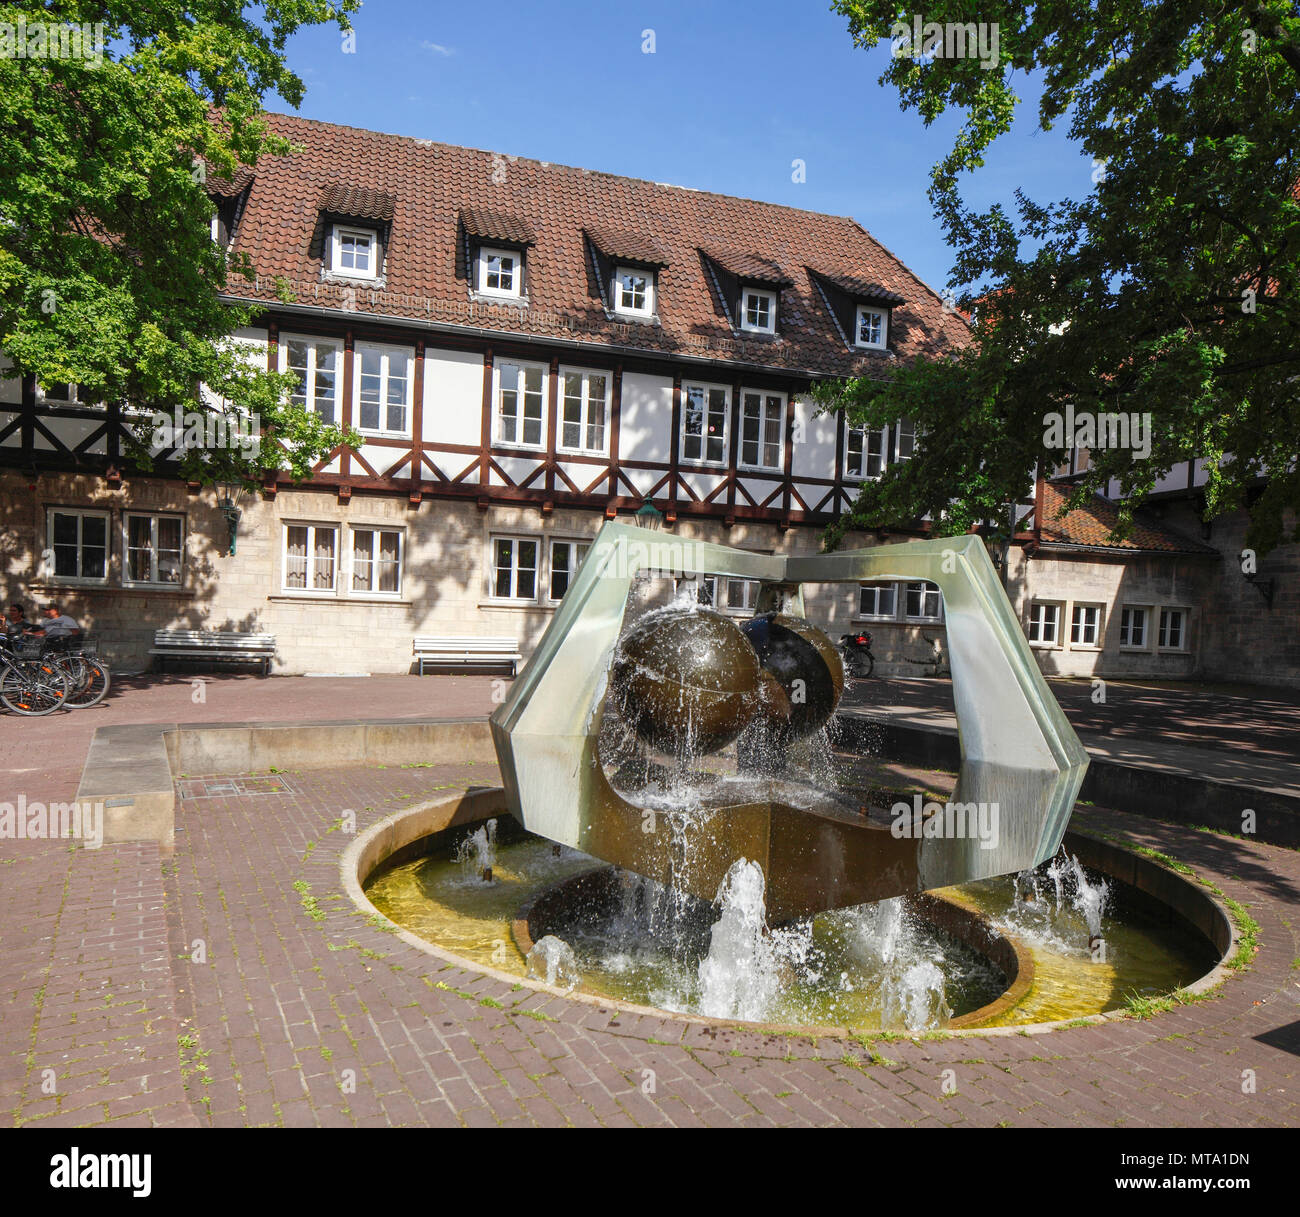 half-timbered house with well at Ballhof Spare, Hannover, Lower-Saxony, Germany, Europe I  Fachwerkhaus am Ballhof mit Brunnen,  Hannover, Niedersachs - Stock Image